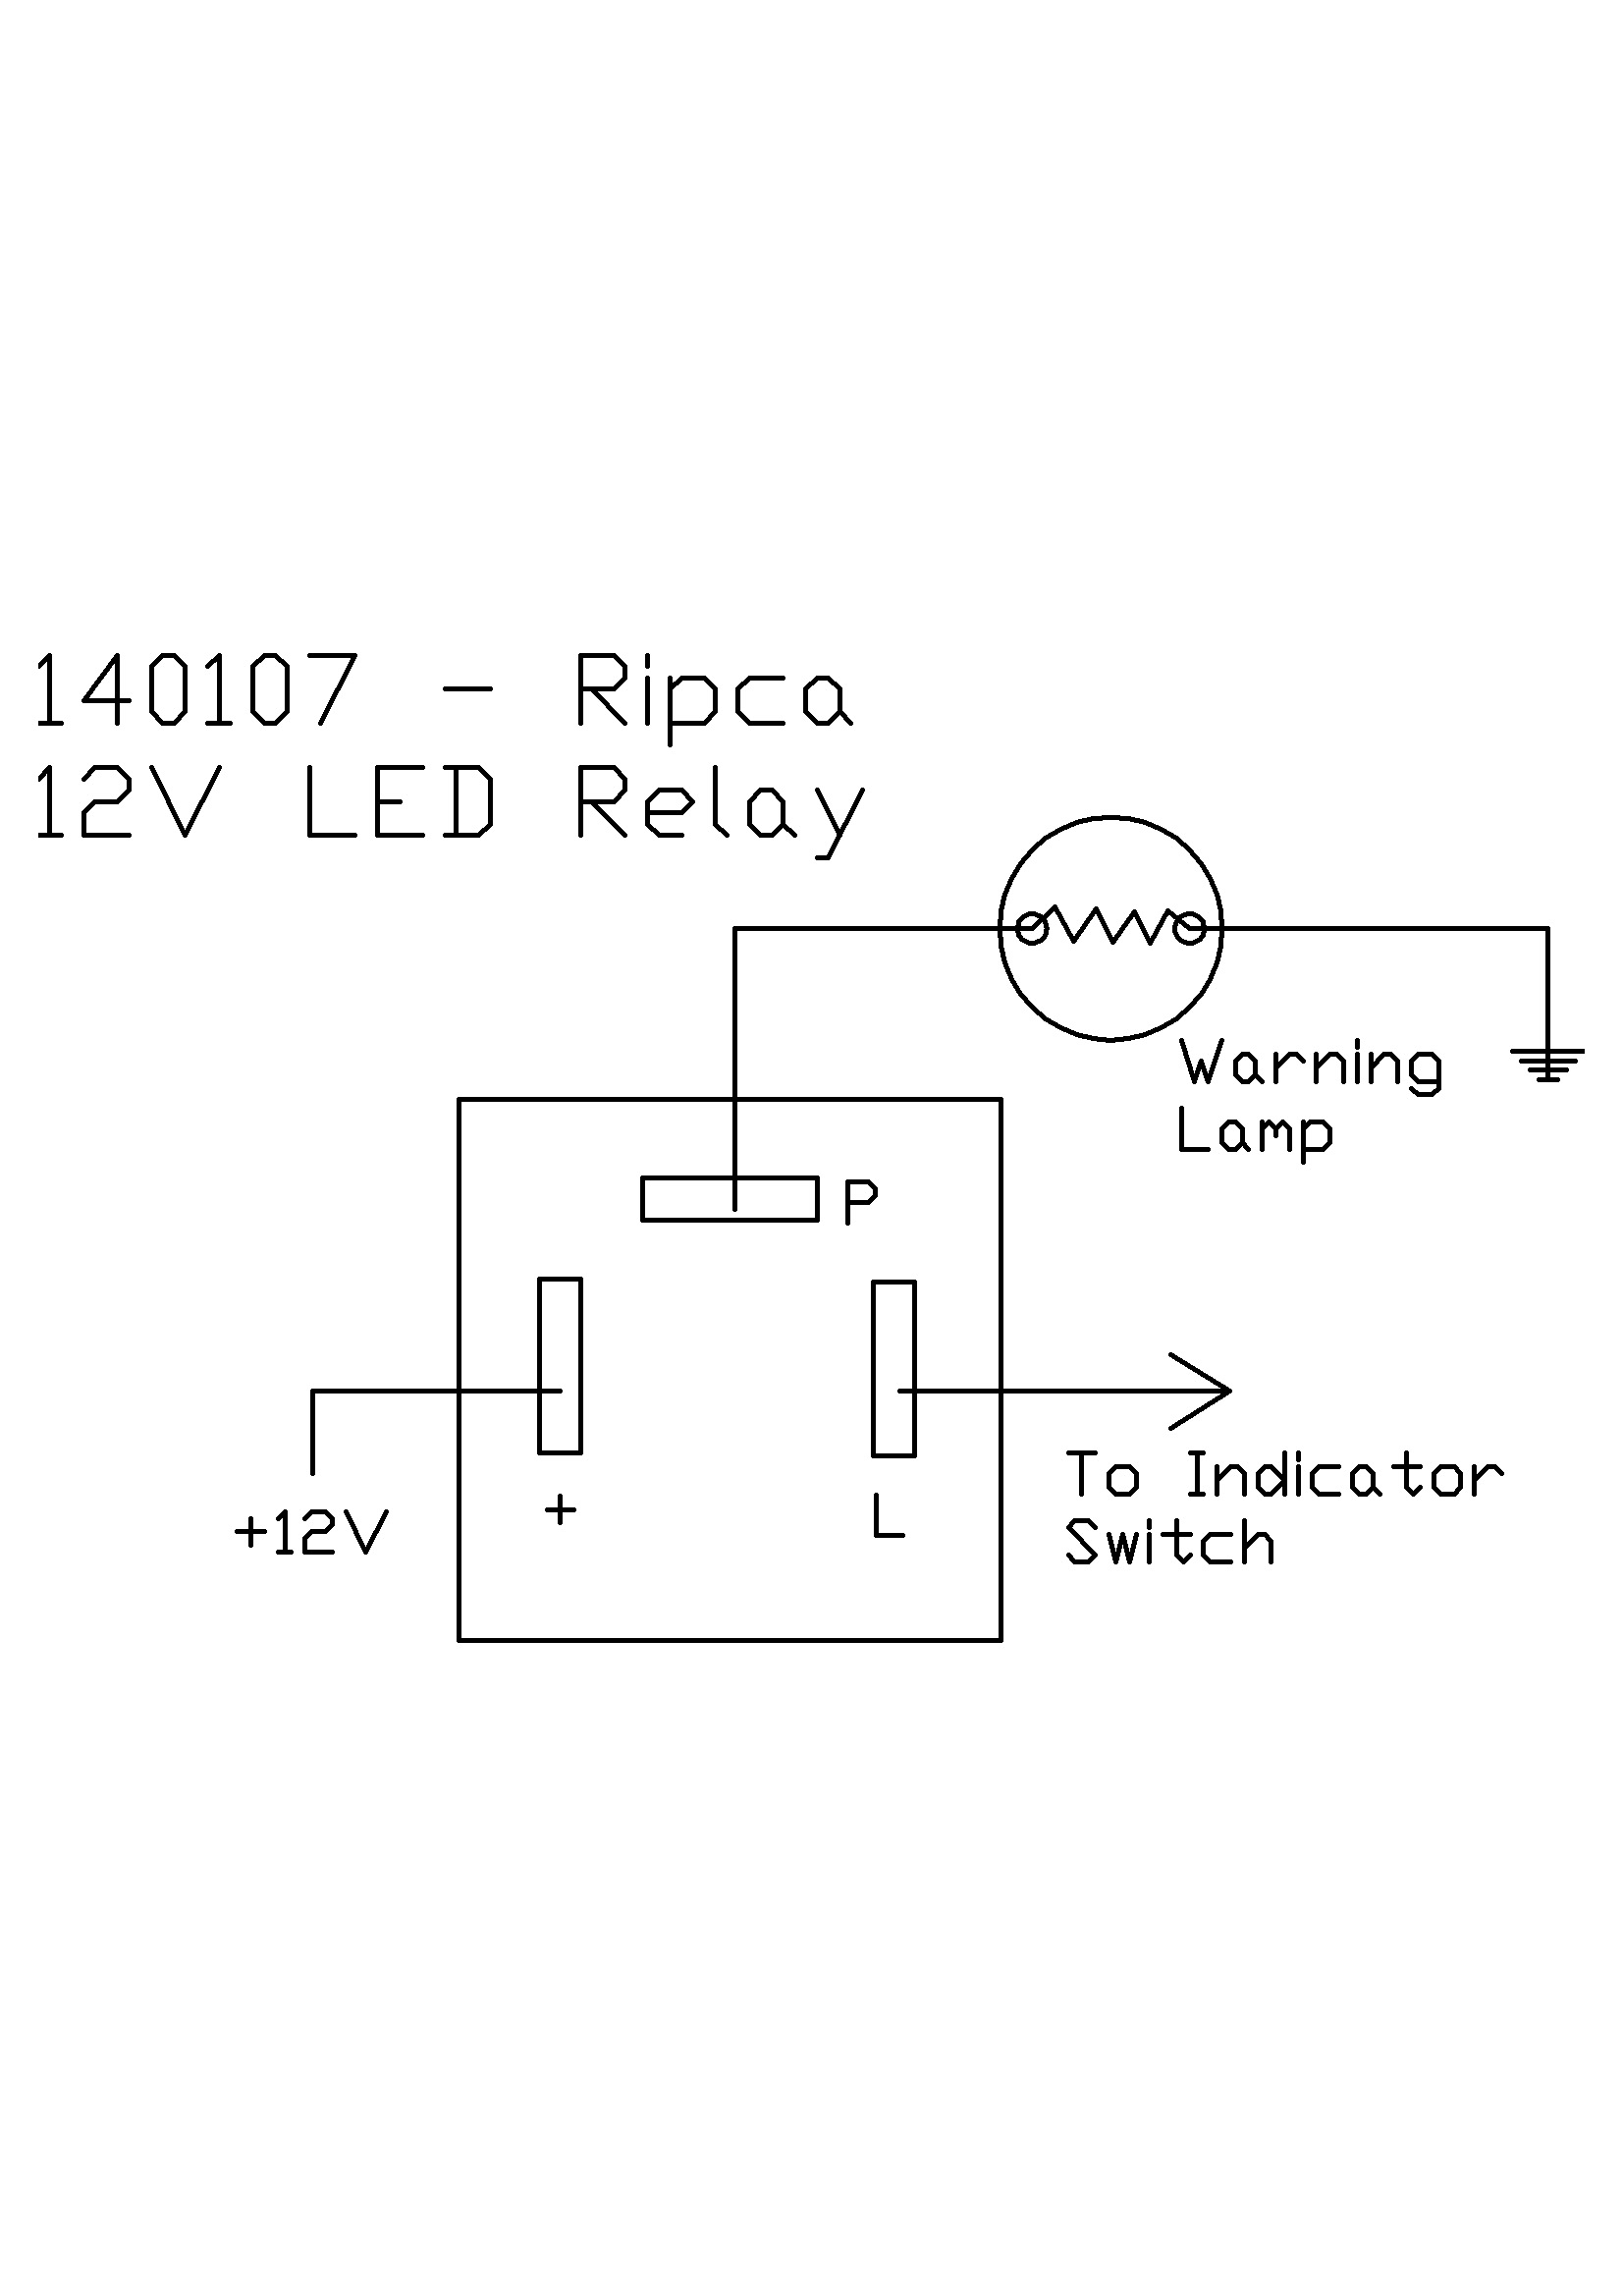 140107 ripca 12 volt led flasher unit flasher unit wiring diagram at panicattacktreatment.co